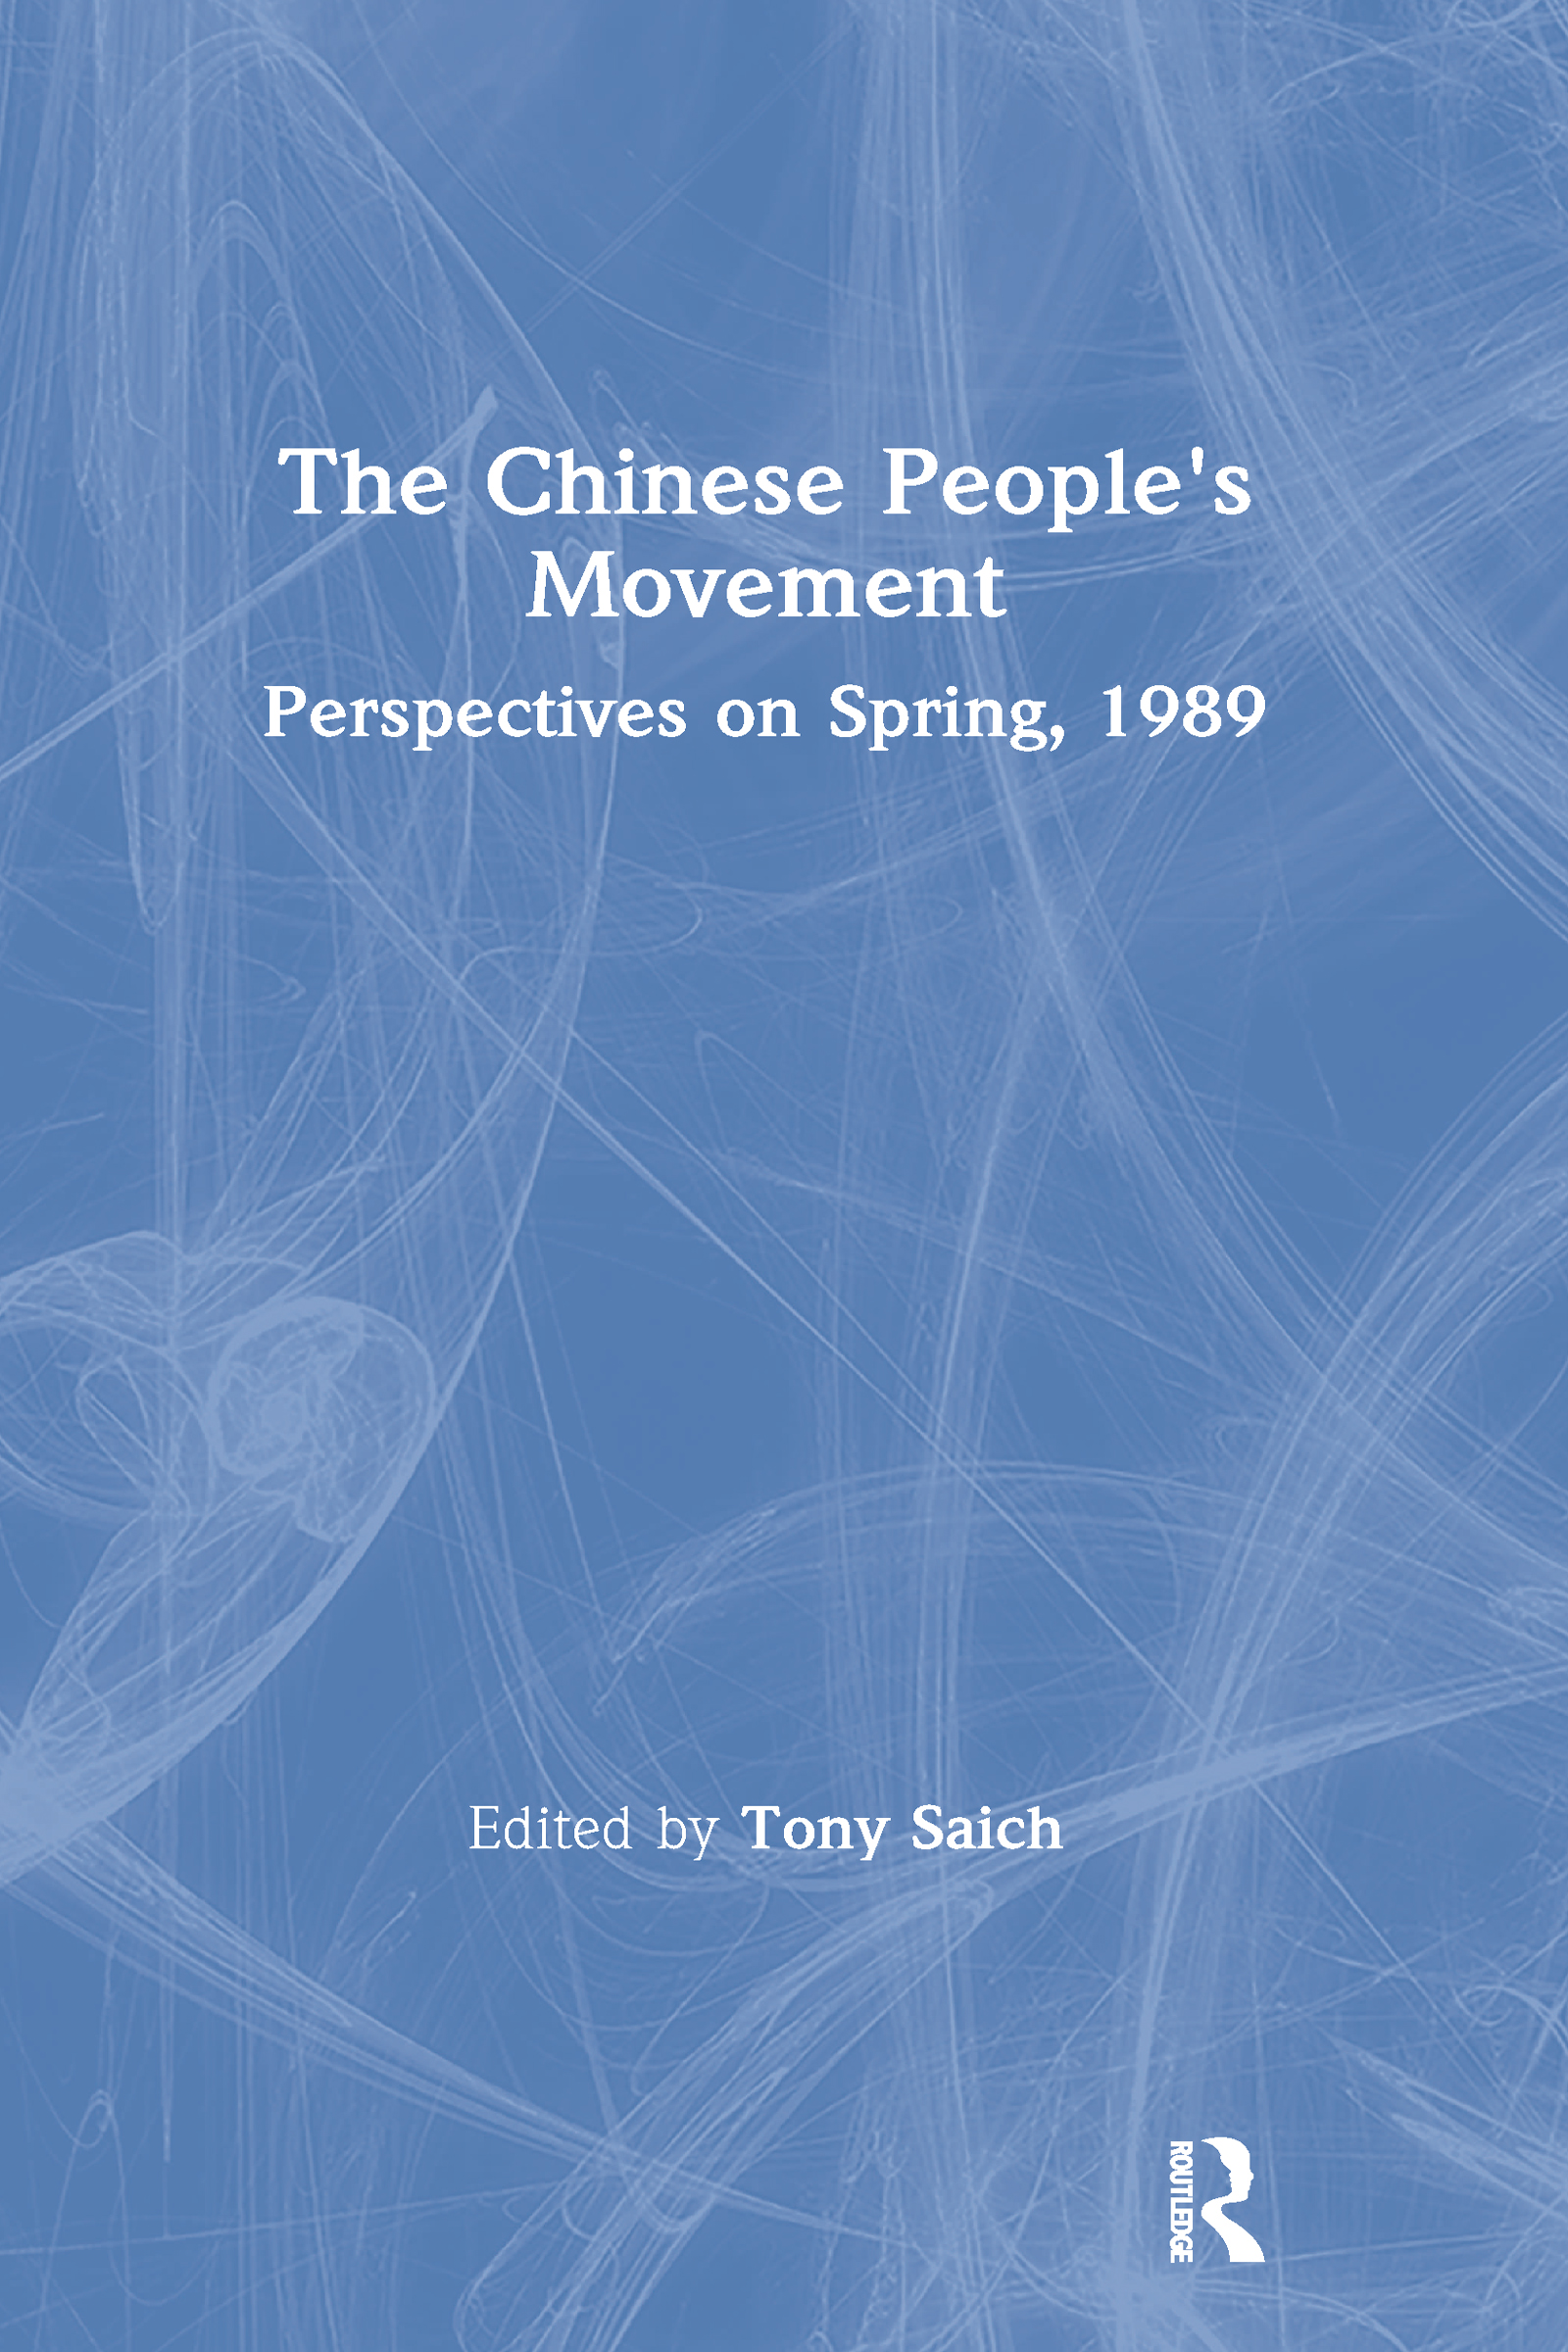 The Chinese People's Movement